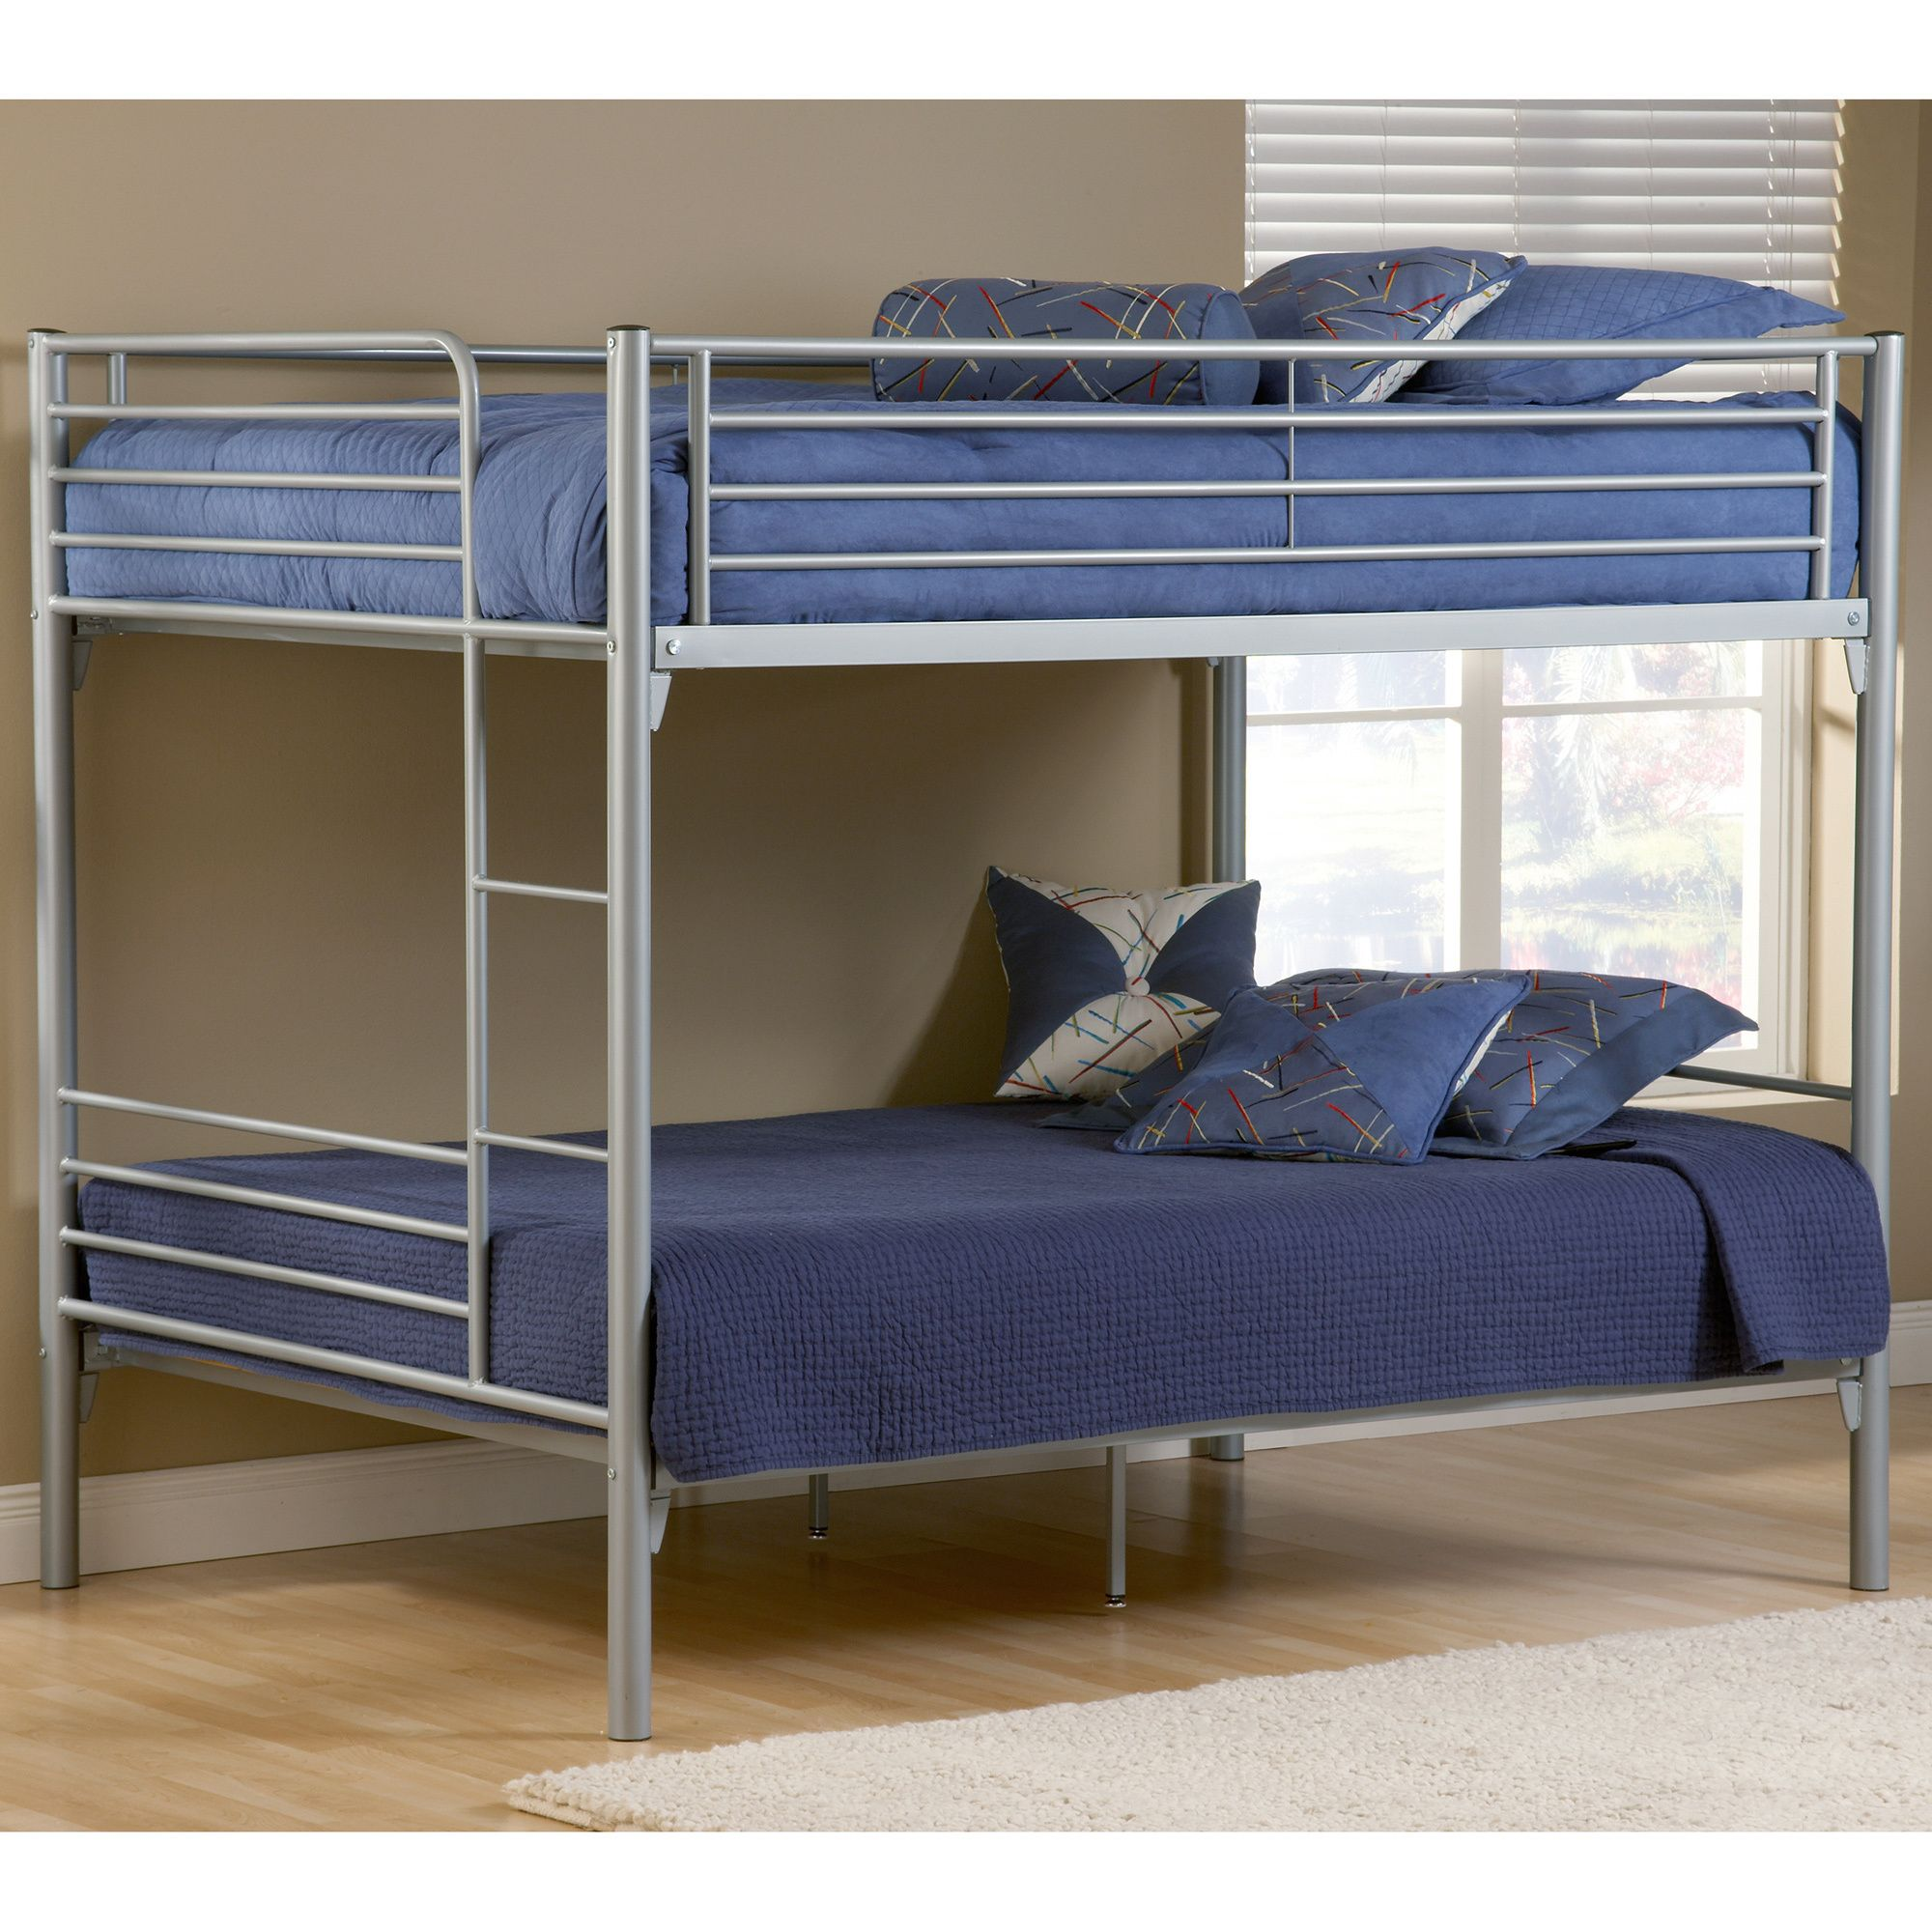 This Brayden bunk bed by Hillsdale has two full-sized beds to provide plenty of room for your child to stretch out at night. The sturdy metal frame has a sleek silver finish to suit most modern decor.